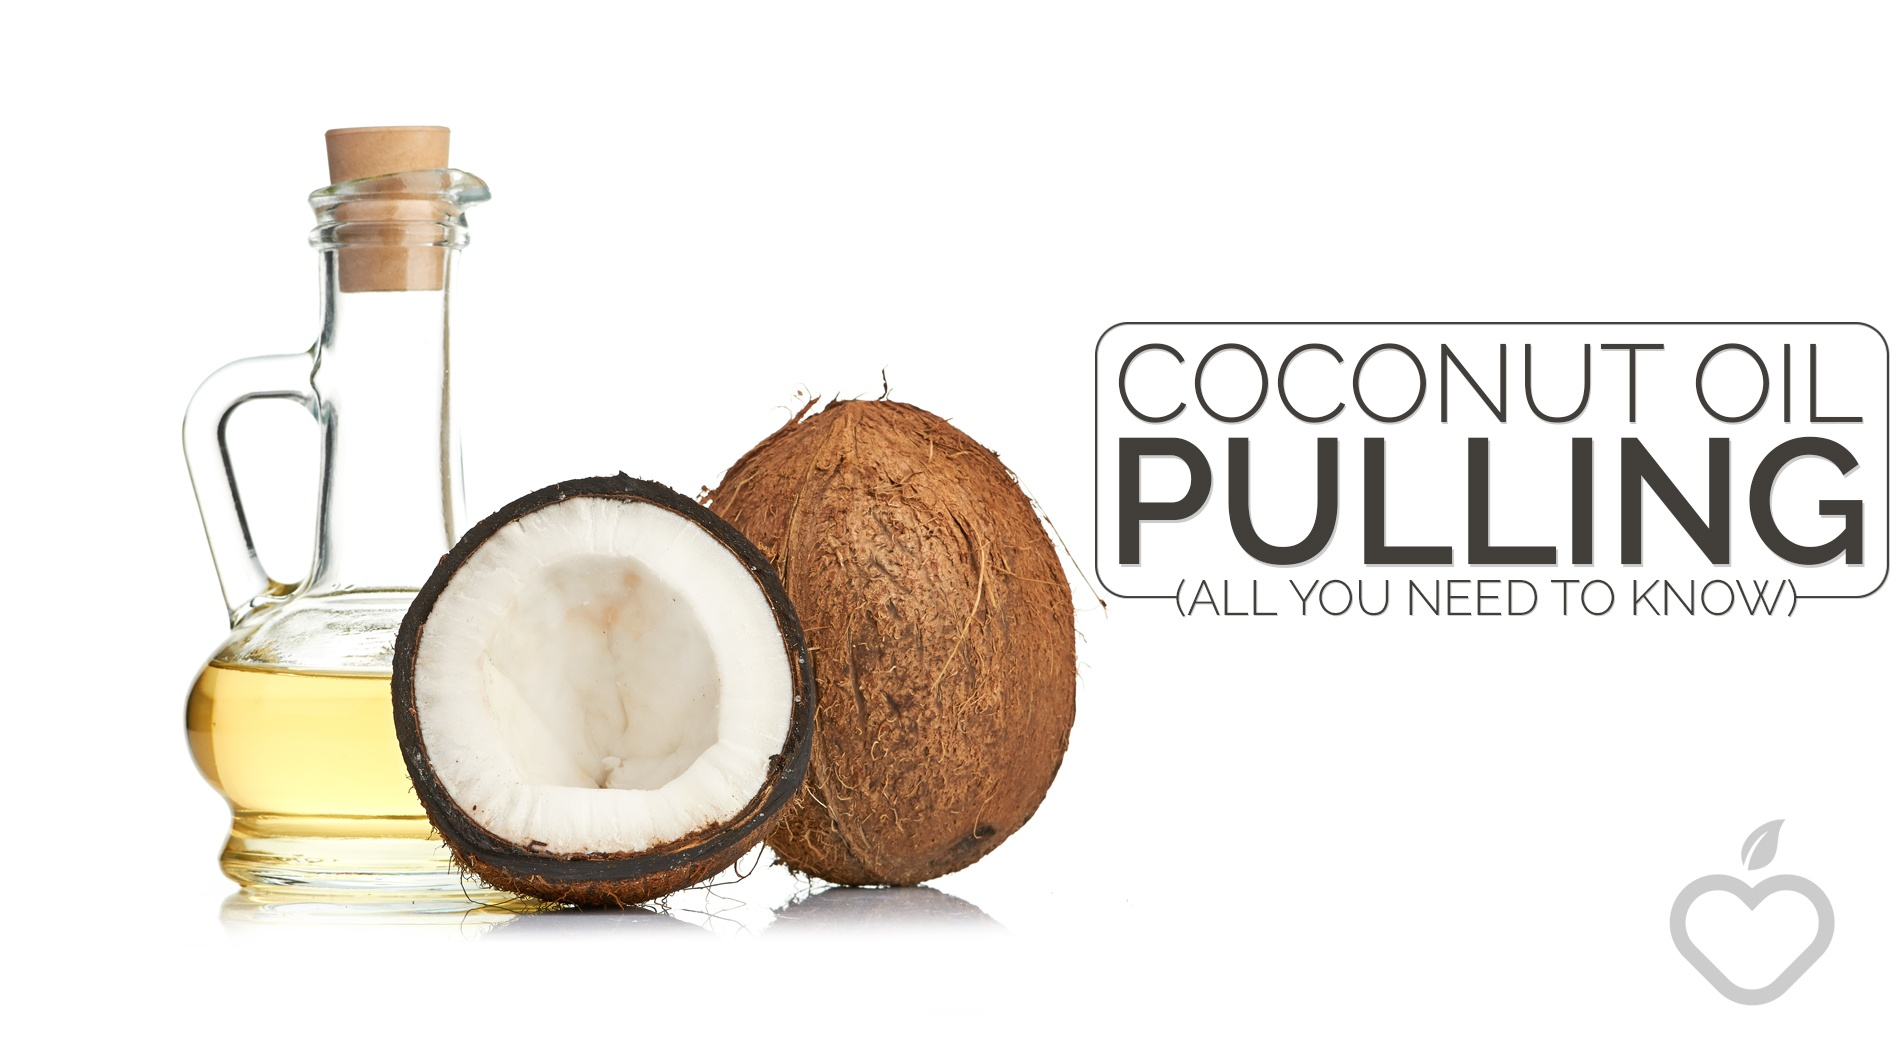 coconut-oil-pulling-image-design-1